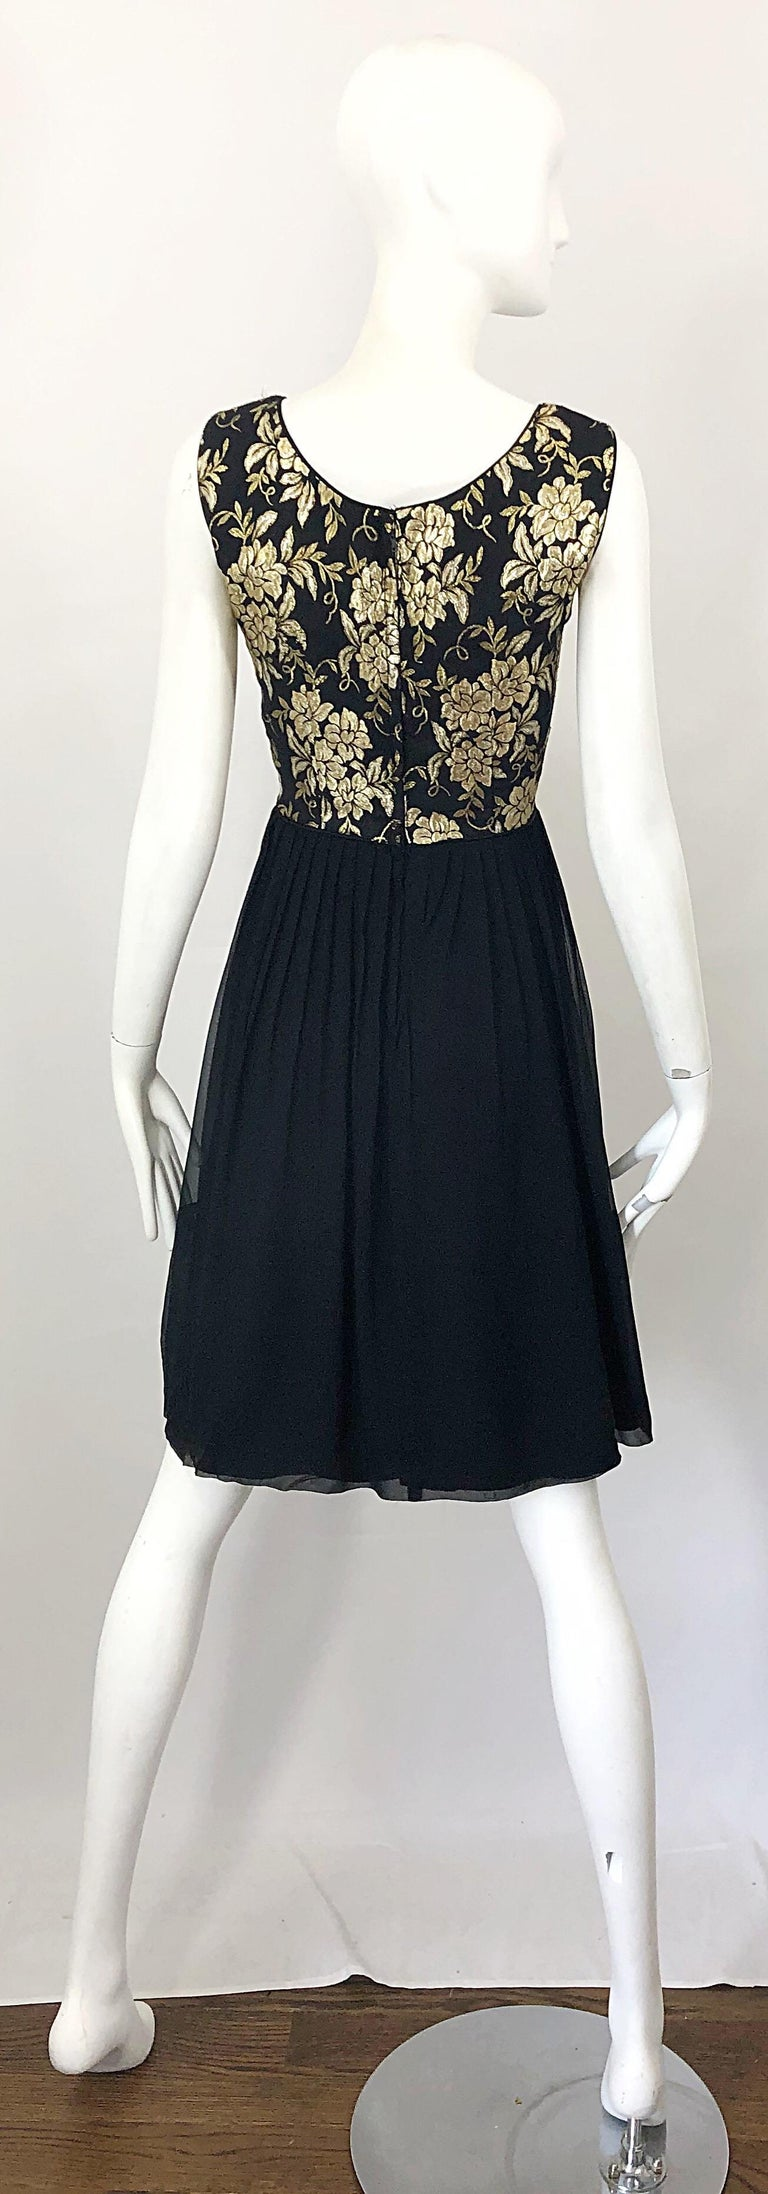 Women's 1950s Demi Couture Gold + Black Silk Brocade and Chiffon Vintage 50s Dress For Sale